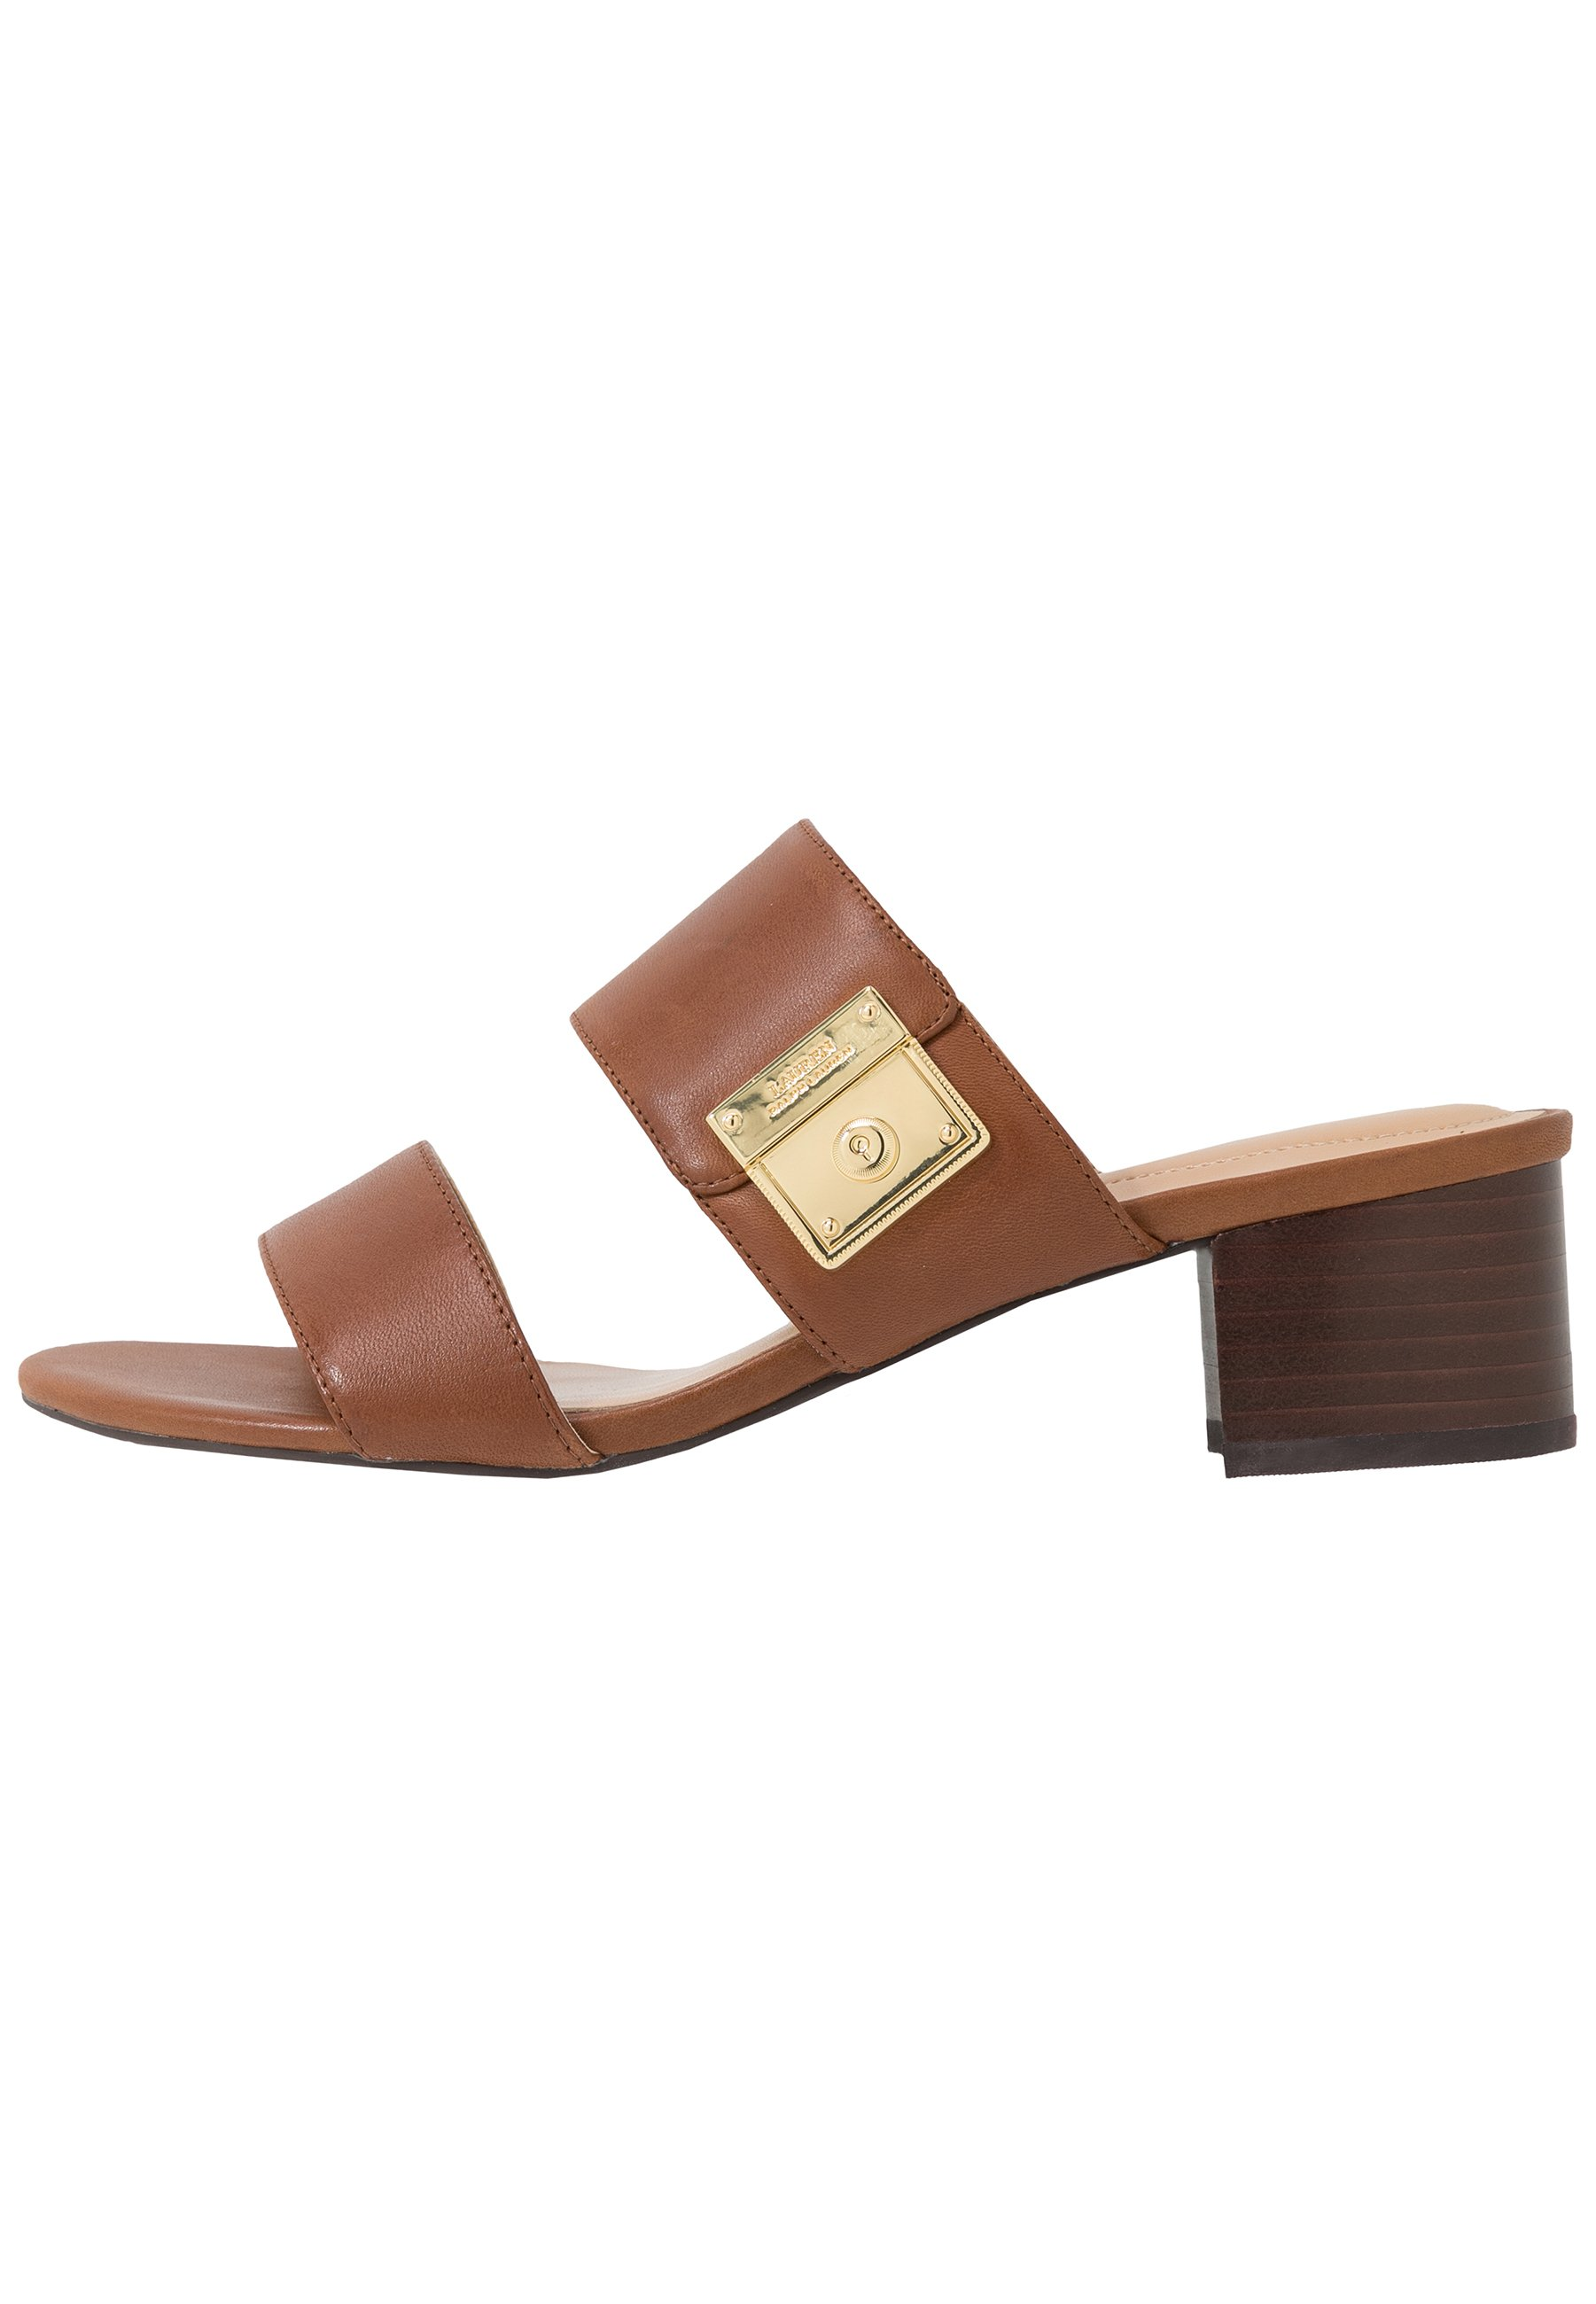 Lauren Ralph Windham - Ciabattine Deep Saddle Tan eZRe3